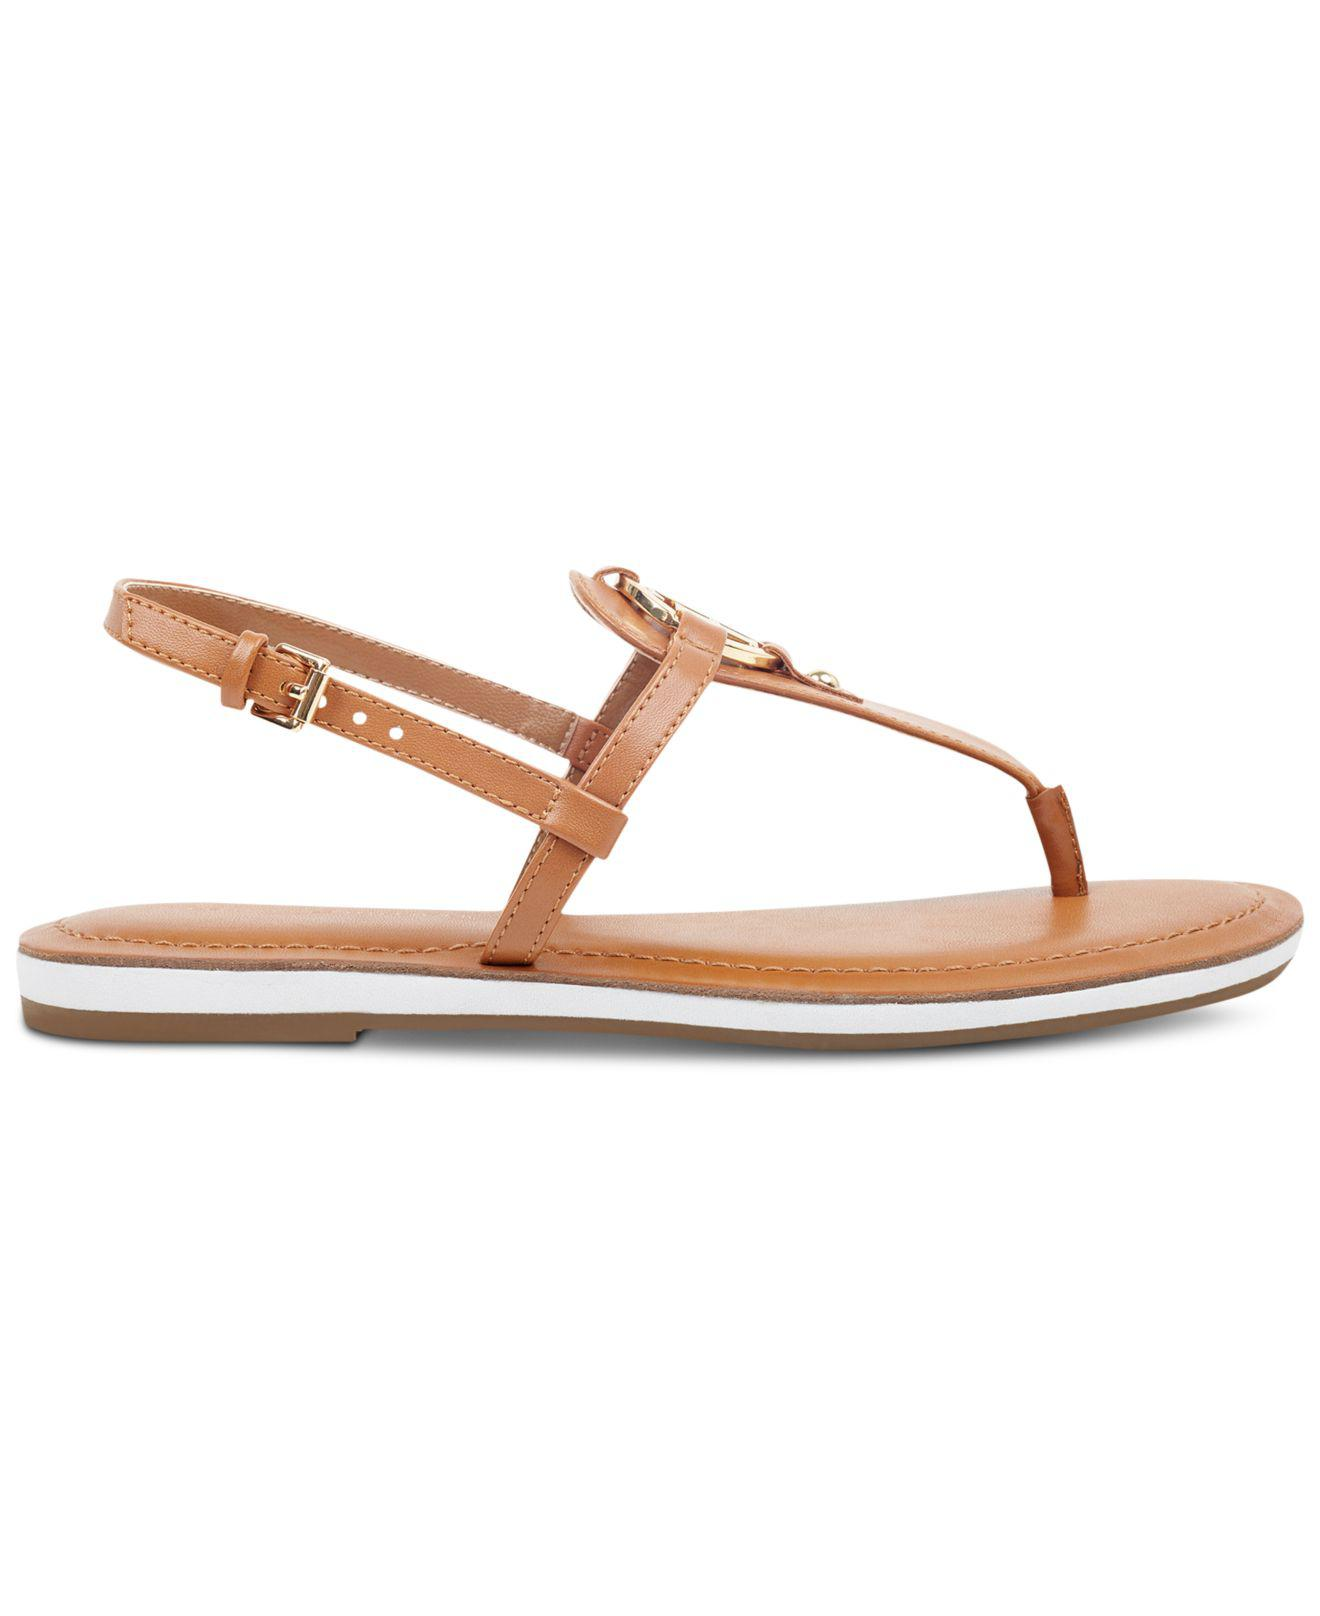 reliable quality united states lace up in Tommy Hilfiger Genei Sandal in Cognac (Brown) - Lyst